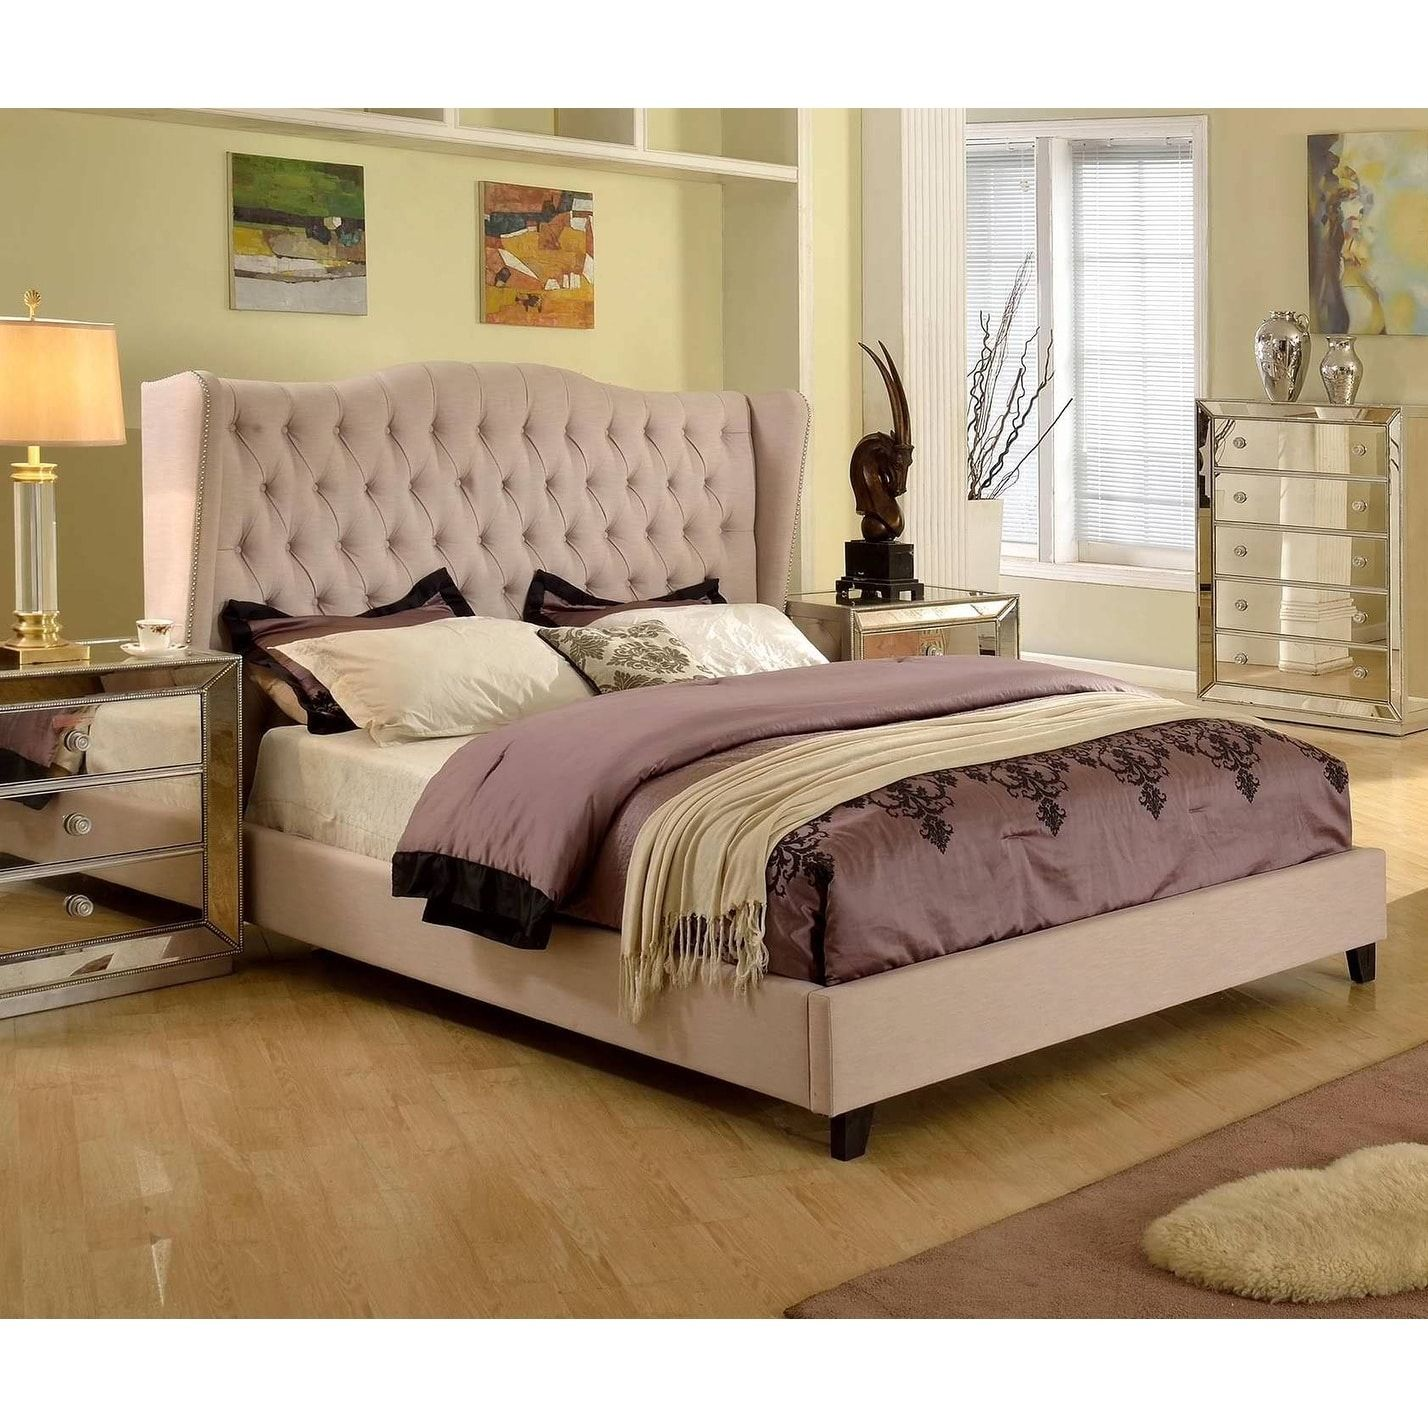 Best Master Furniture Upholstered Taupe Panel Bed (Queen